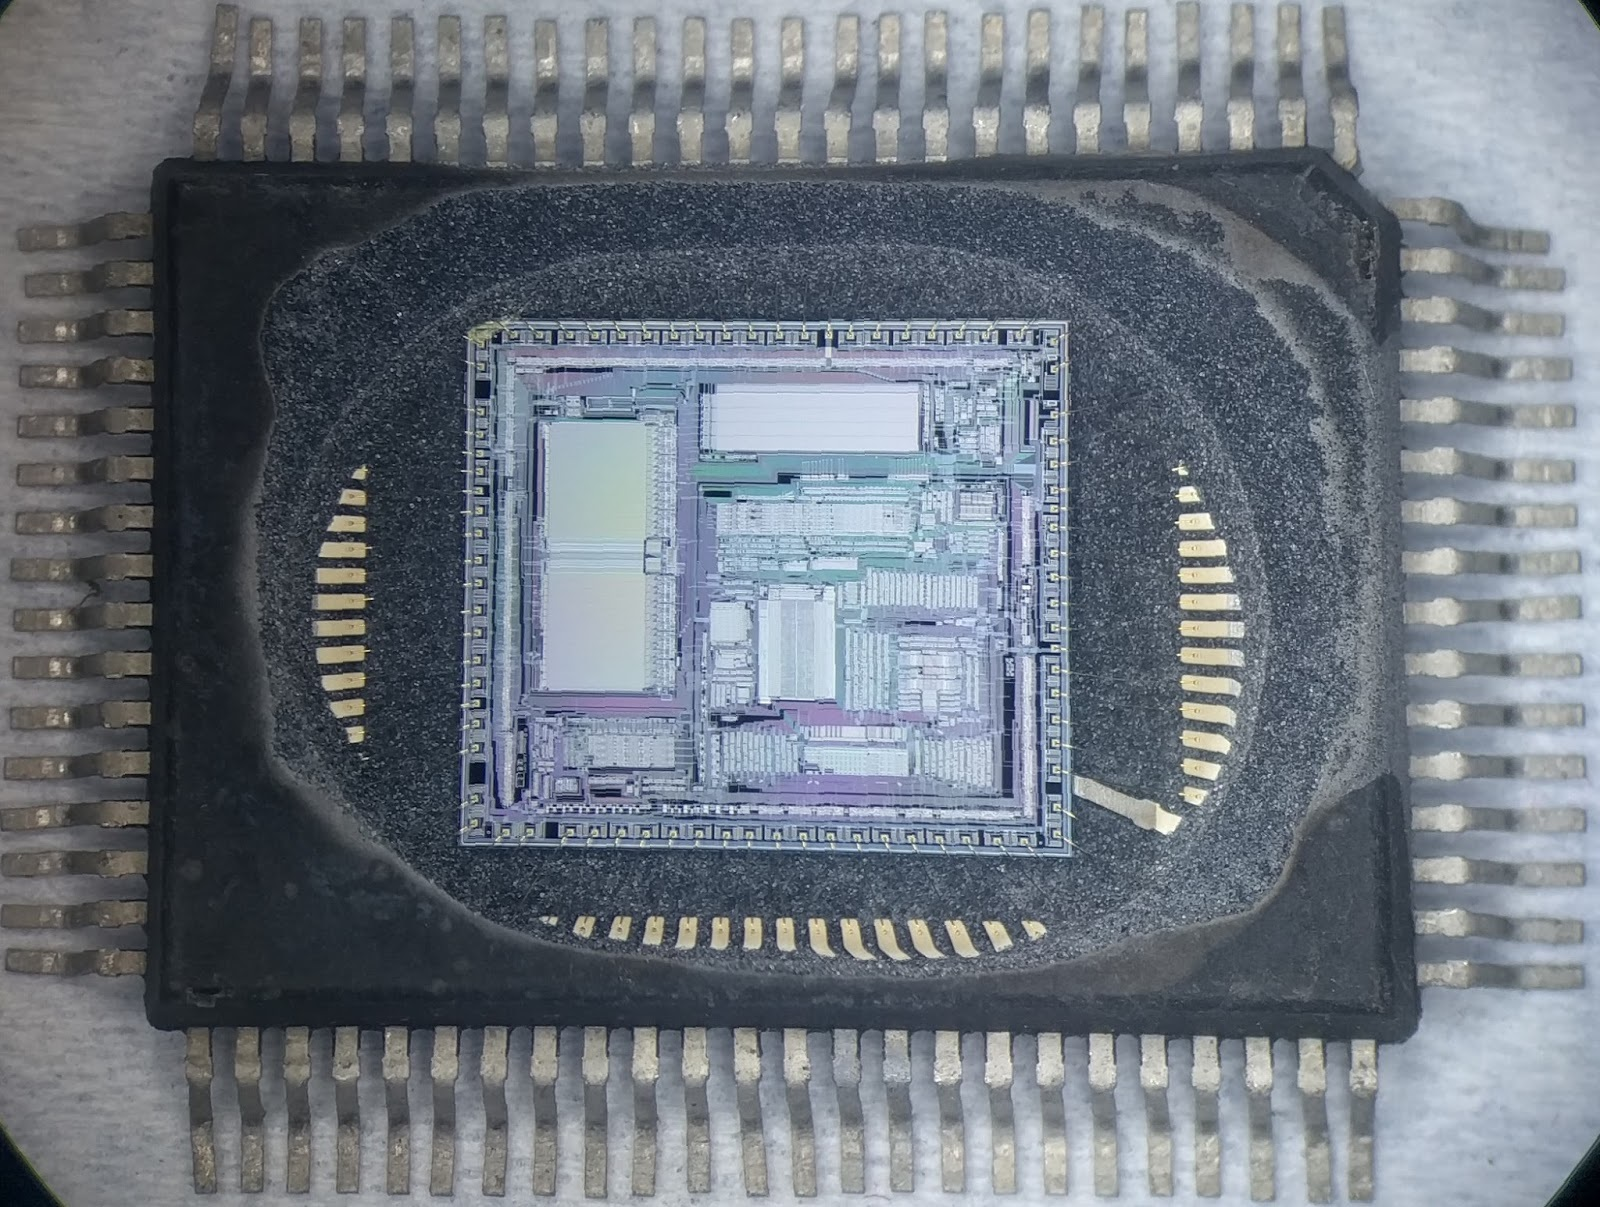 Mame Devs Are Cracking Open Arcade Chips To Get Around Drm Ars Logic Circuit Of Copy Machine Digital Electronics Life Learns Us Enlarge A Look Inside The Circuitry Decapped Chip